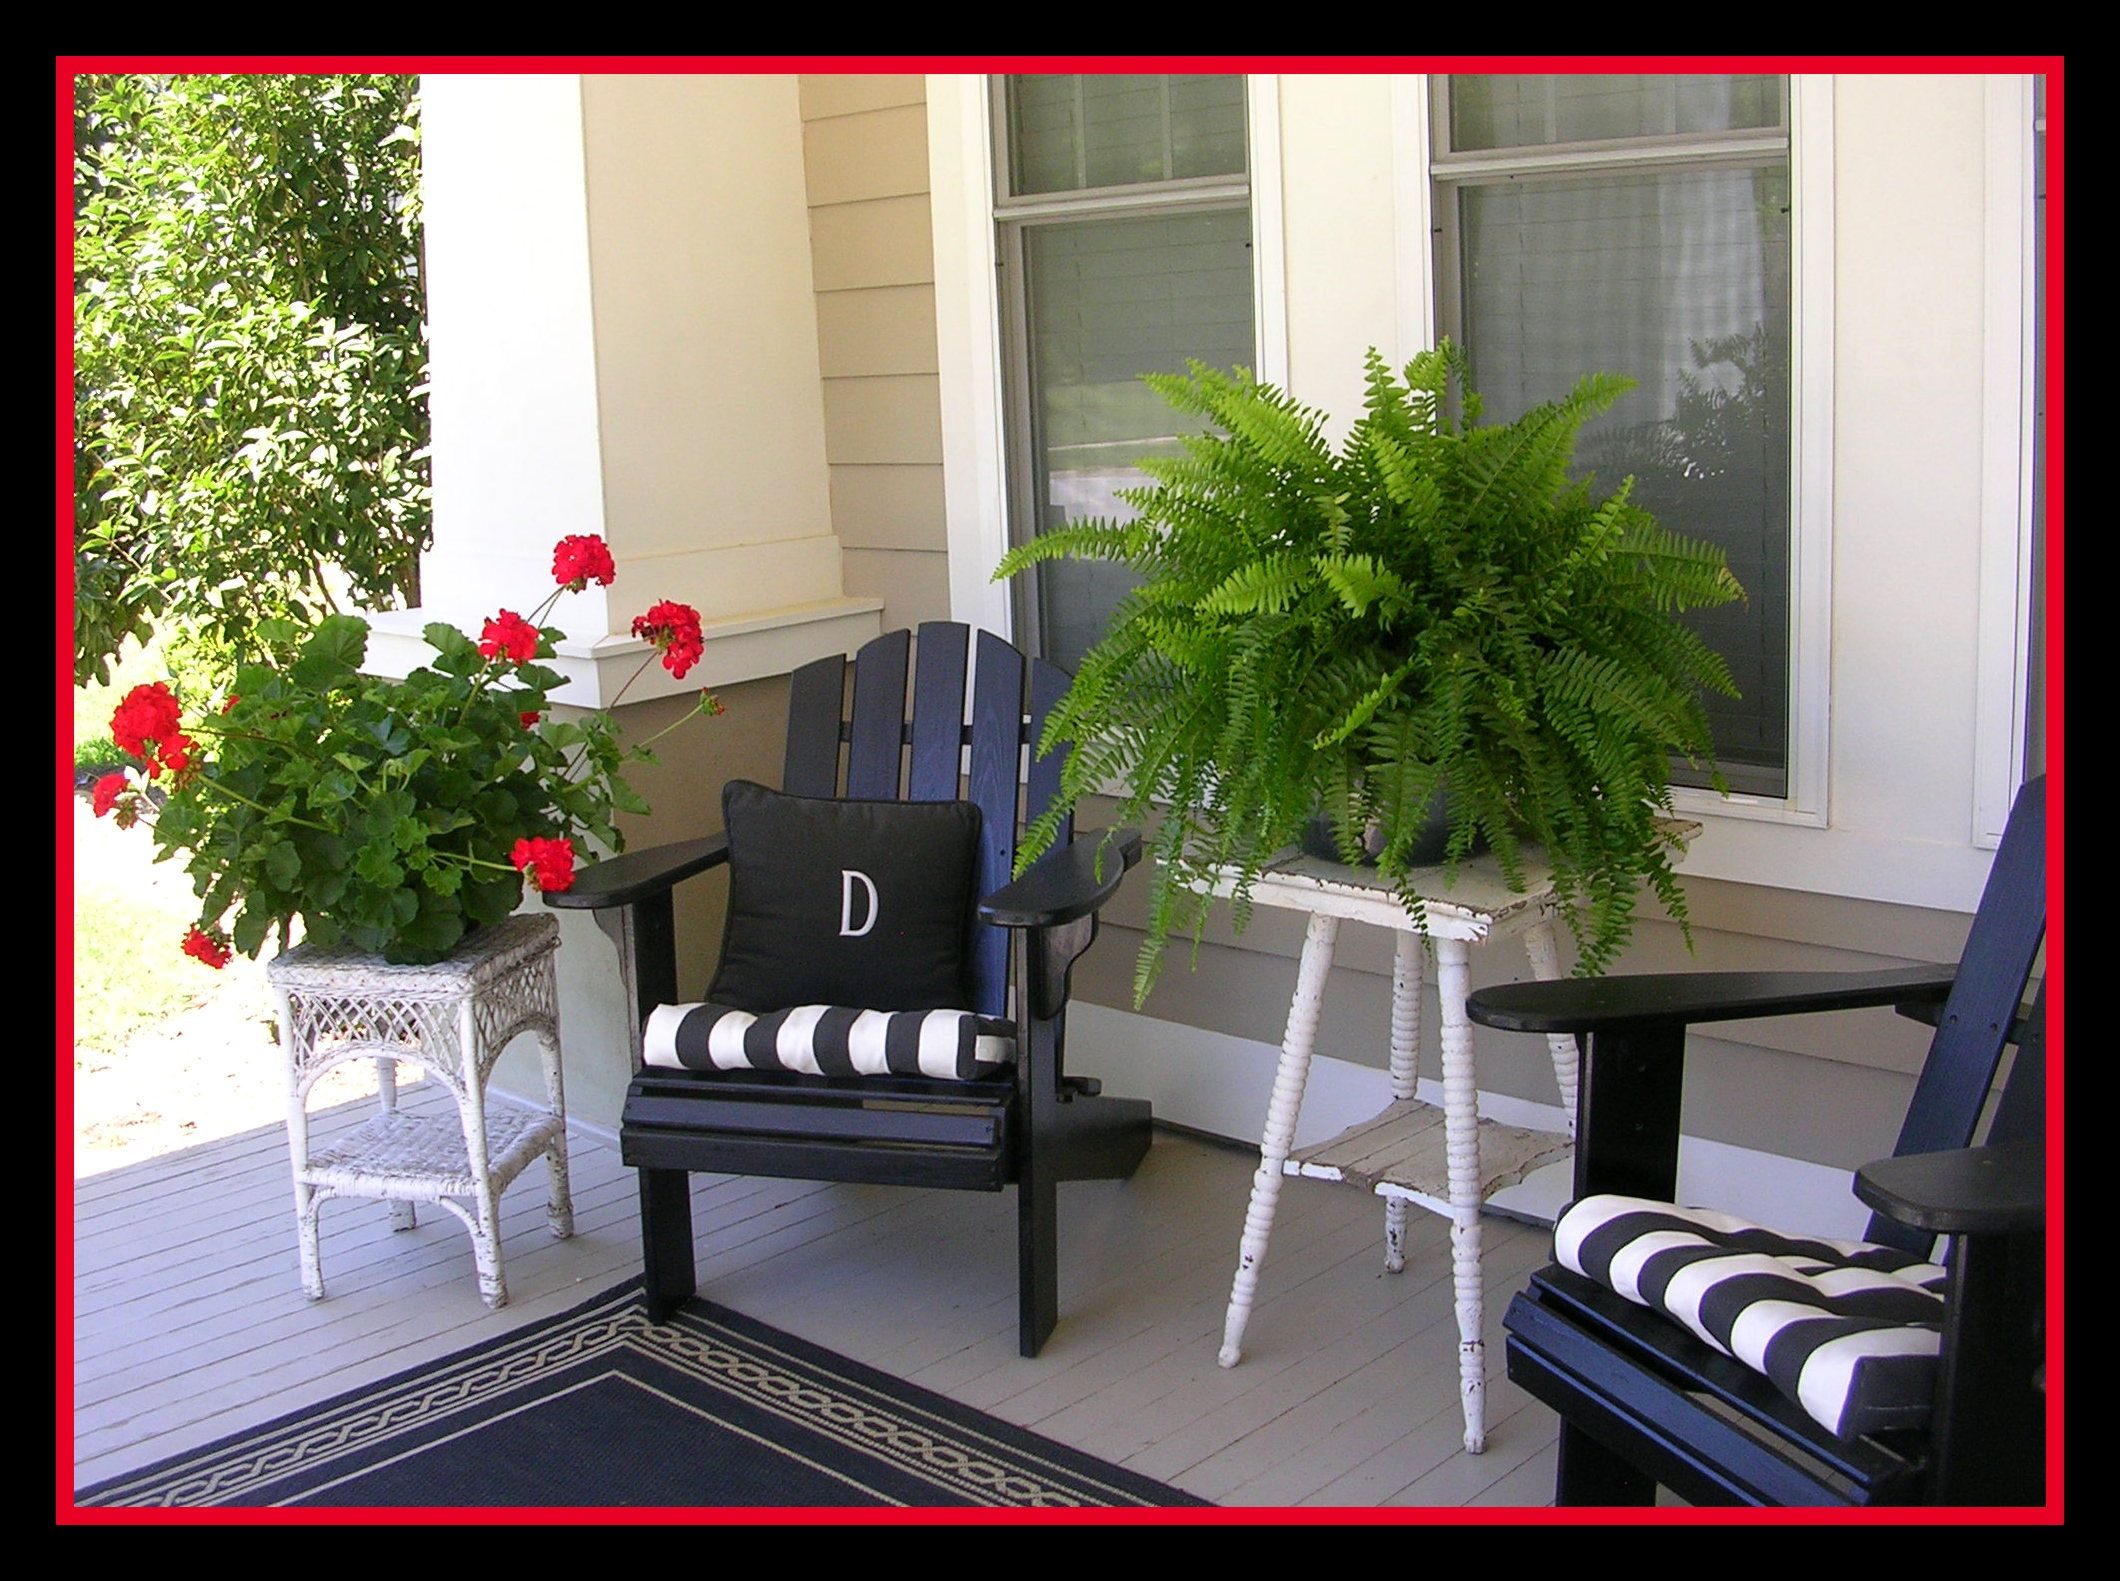 Southern porch complete with red geraniums and ferns…oh, and a big glass of sw…